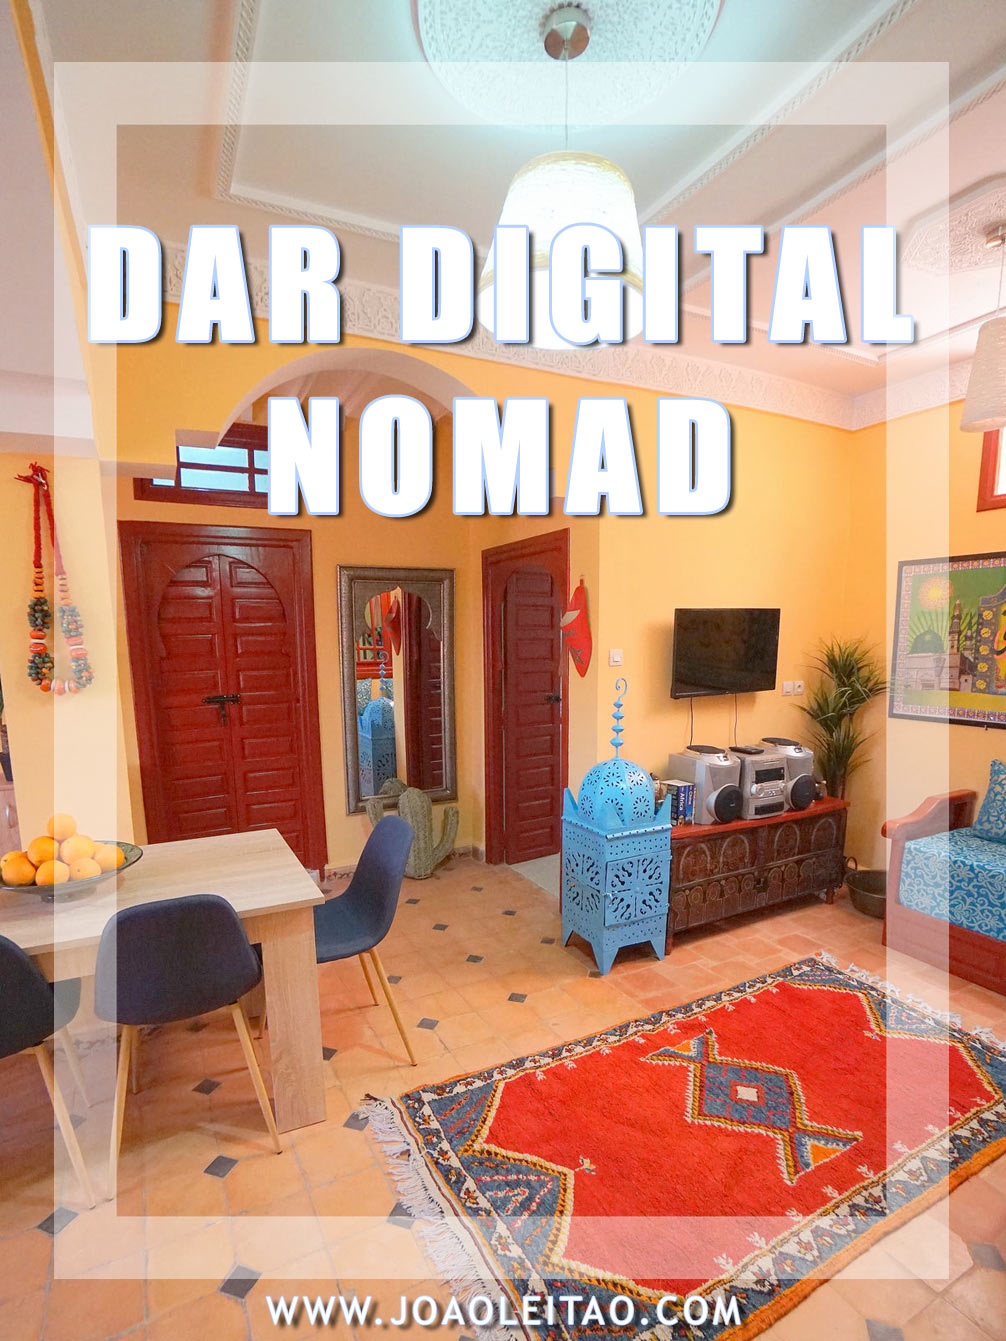 My Coworking Space • Dar Digital Nomad